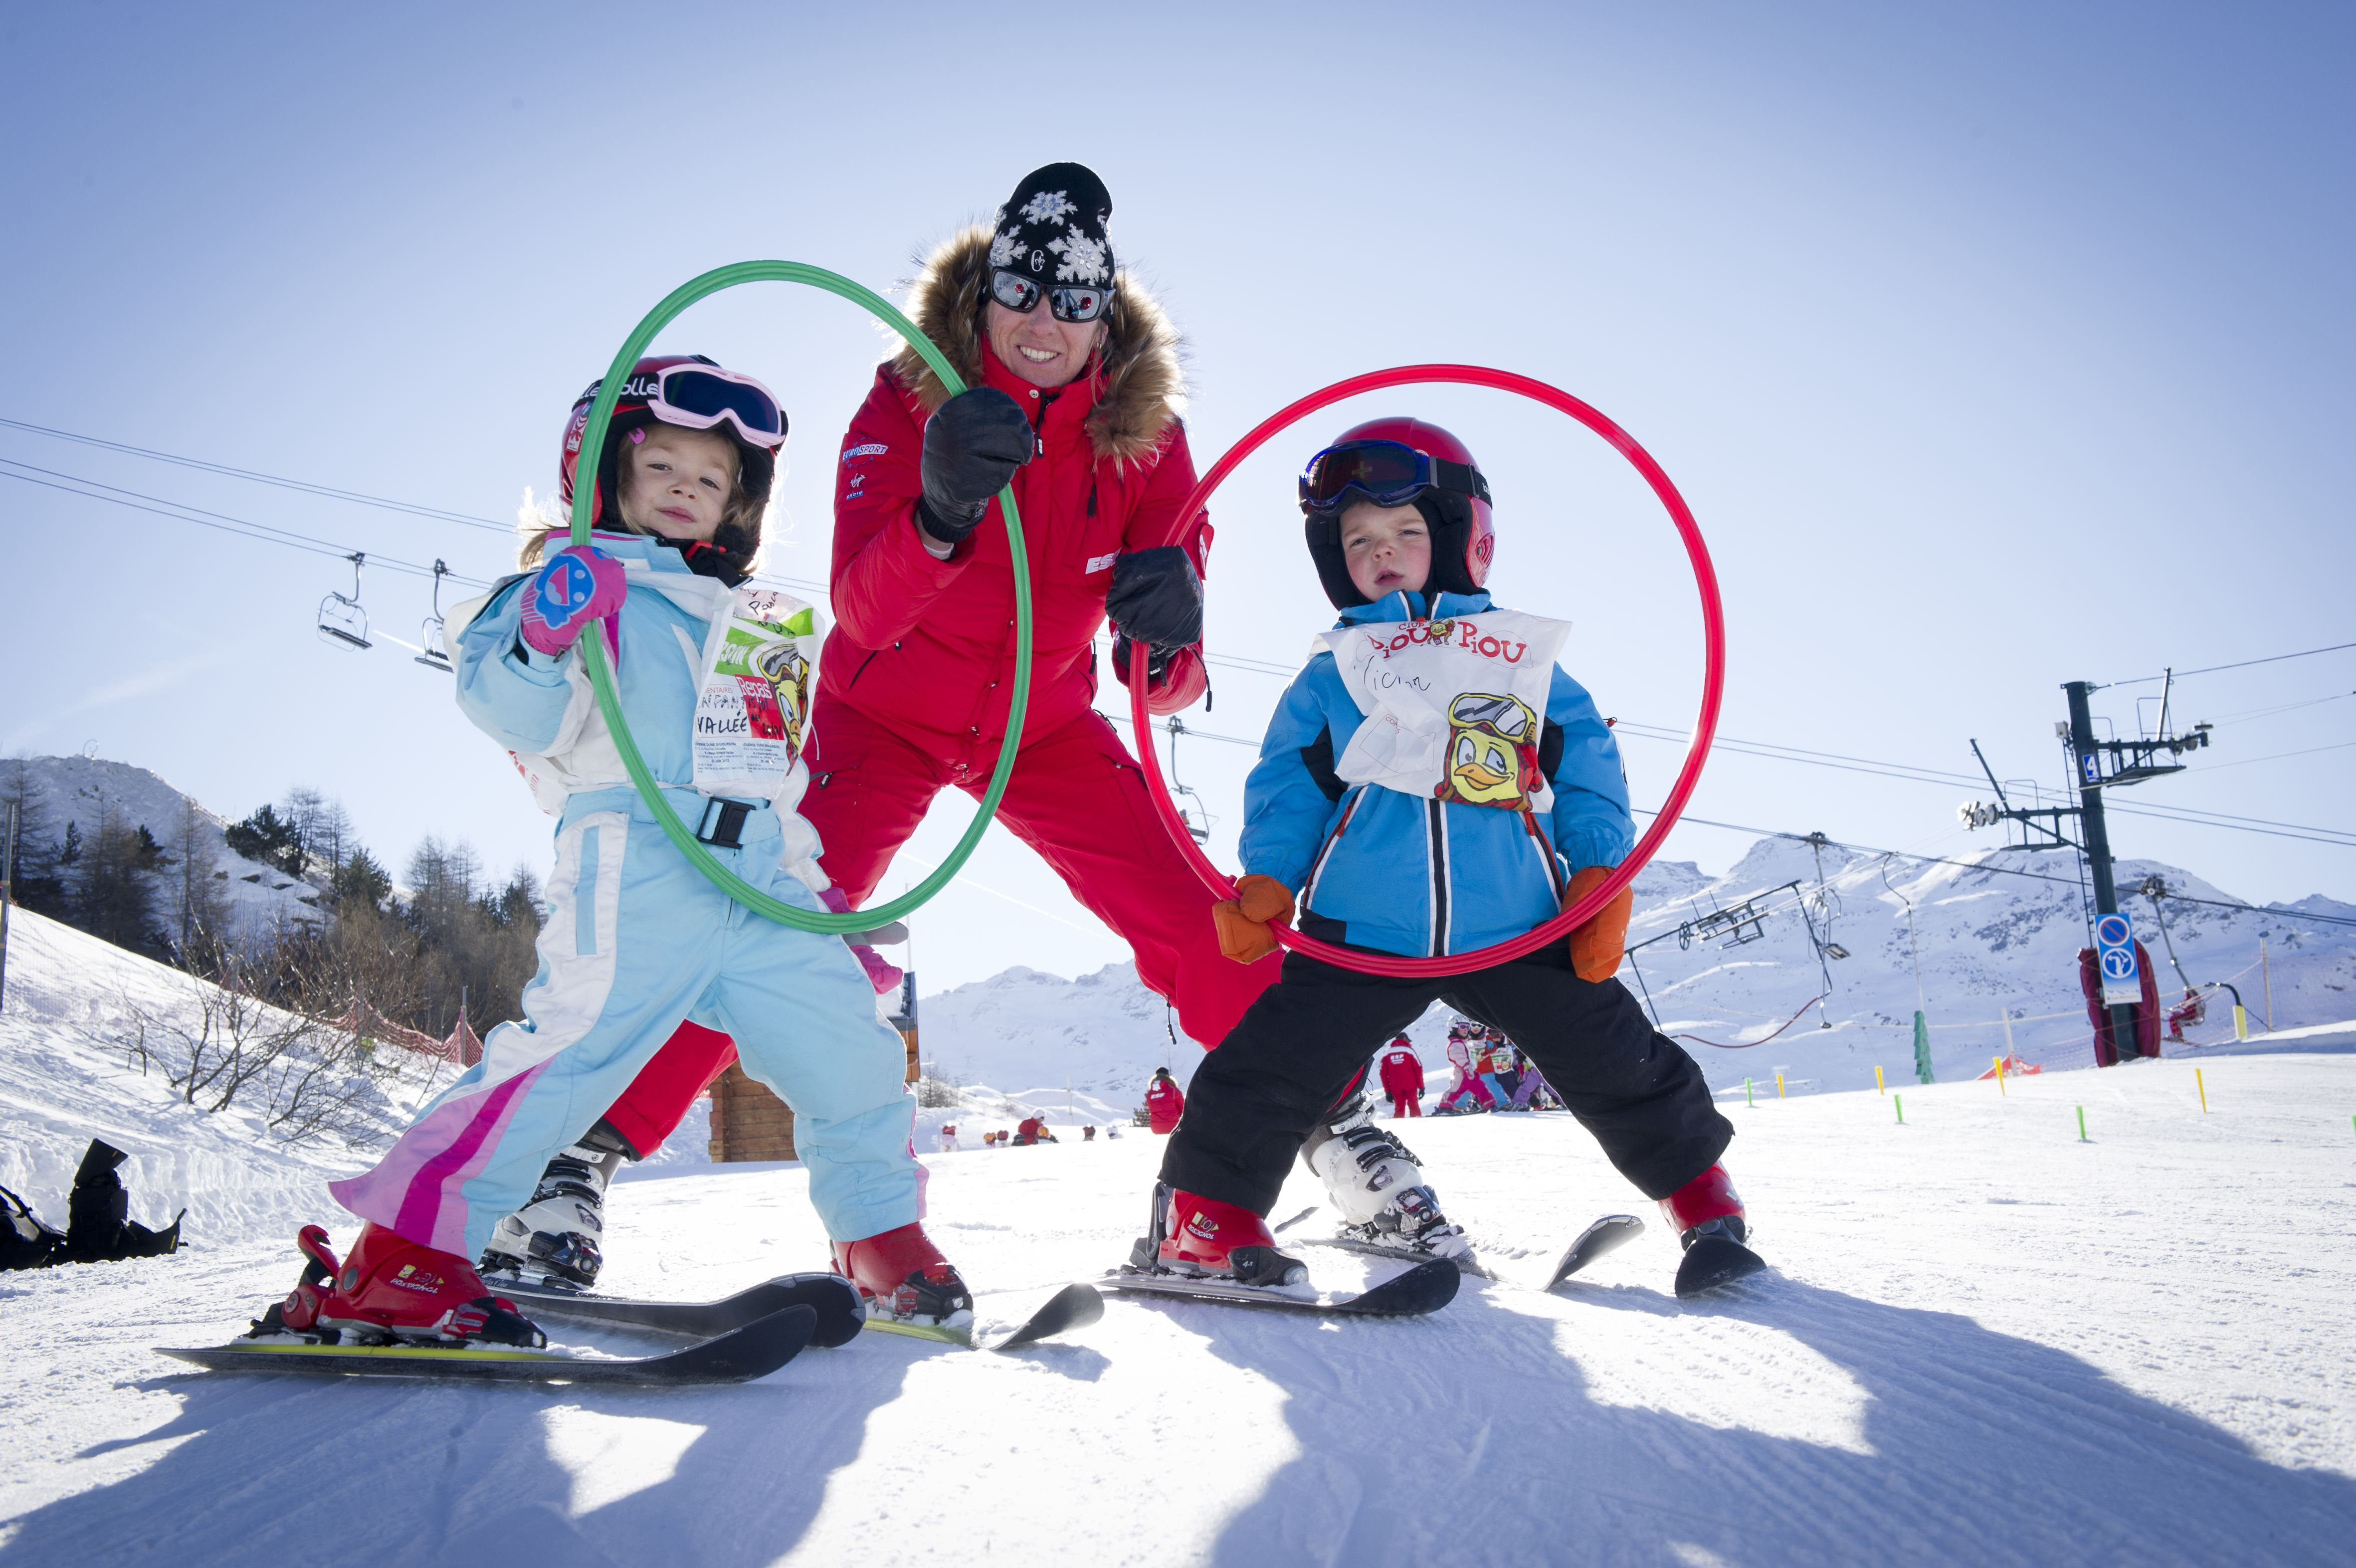 Group ski lessons 6 mornings, Piou Piou Village, 4 to 5 years (unavailable in Saint Martin de Belleville), beginner till snowflake level